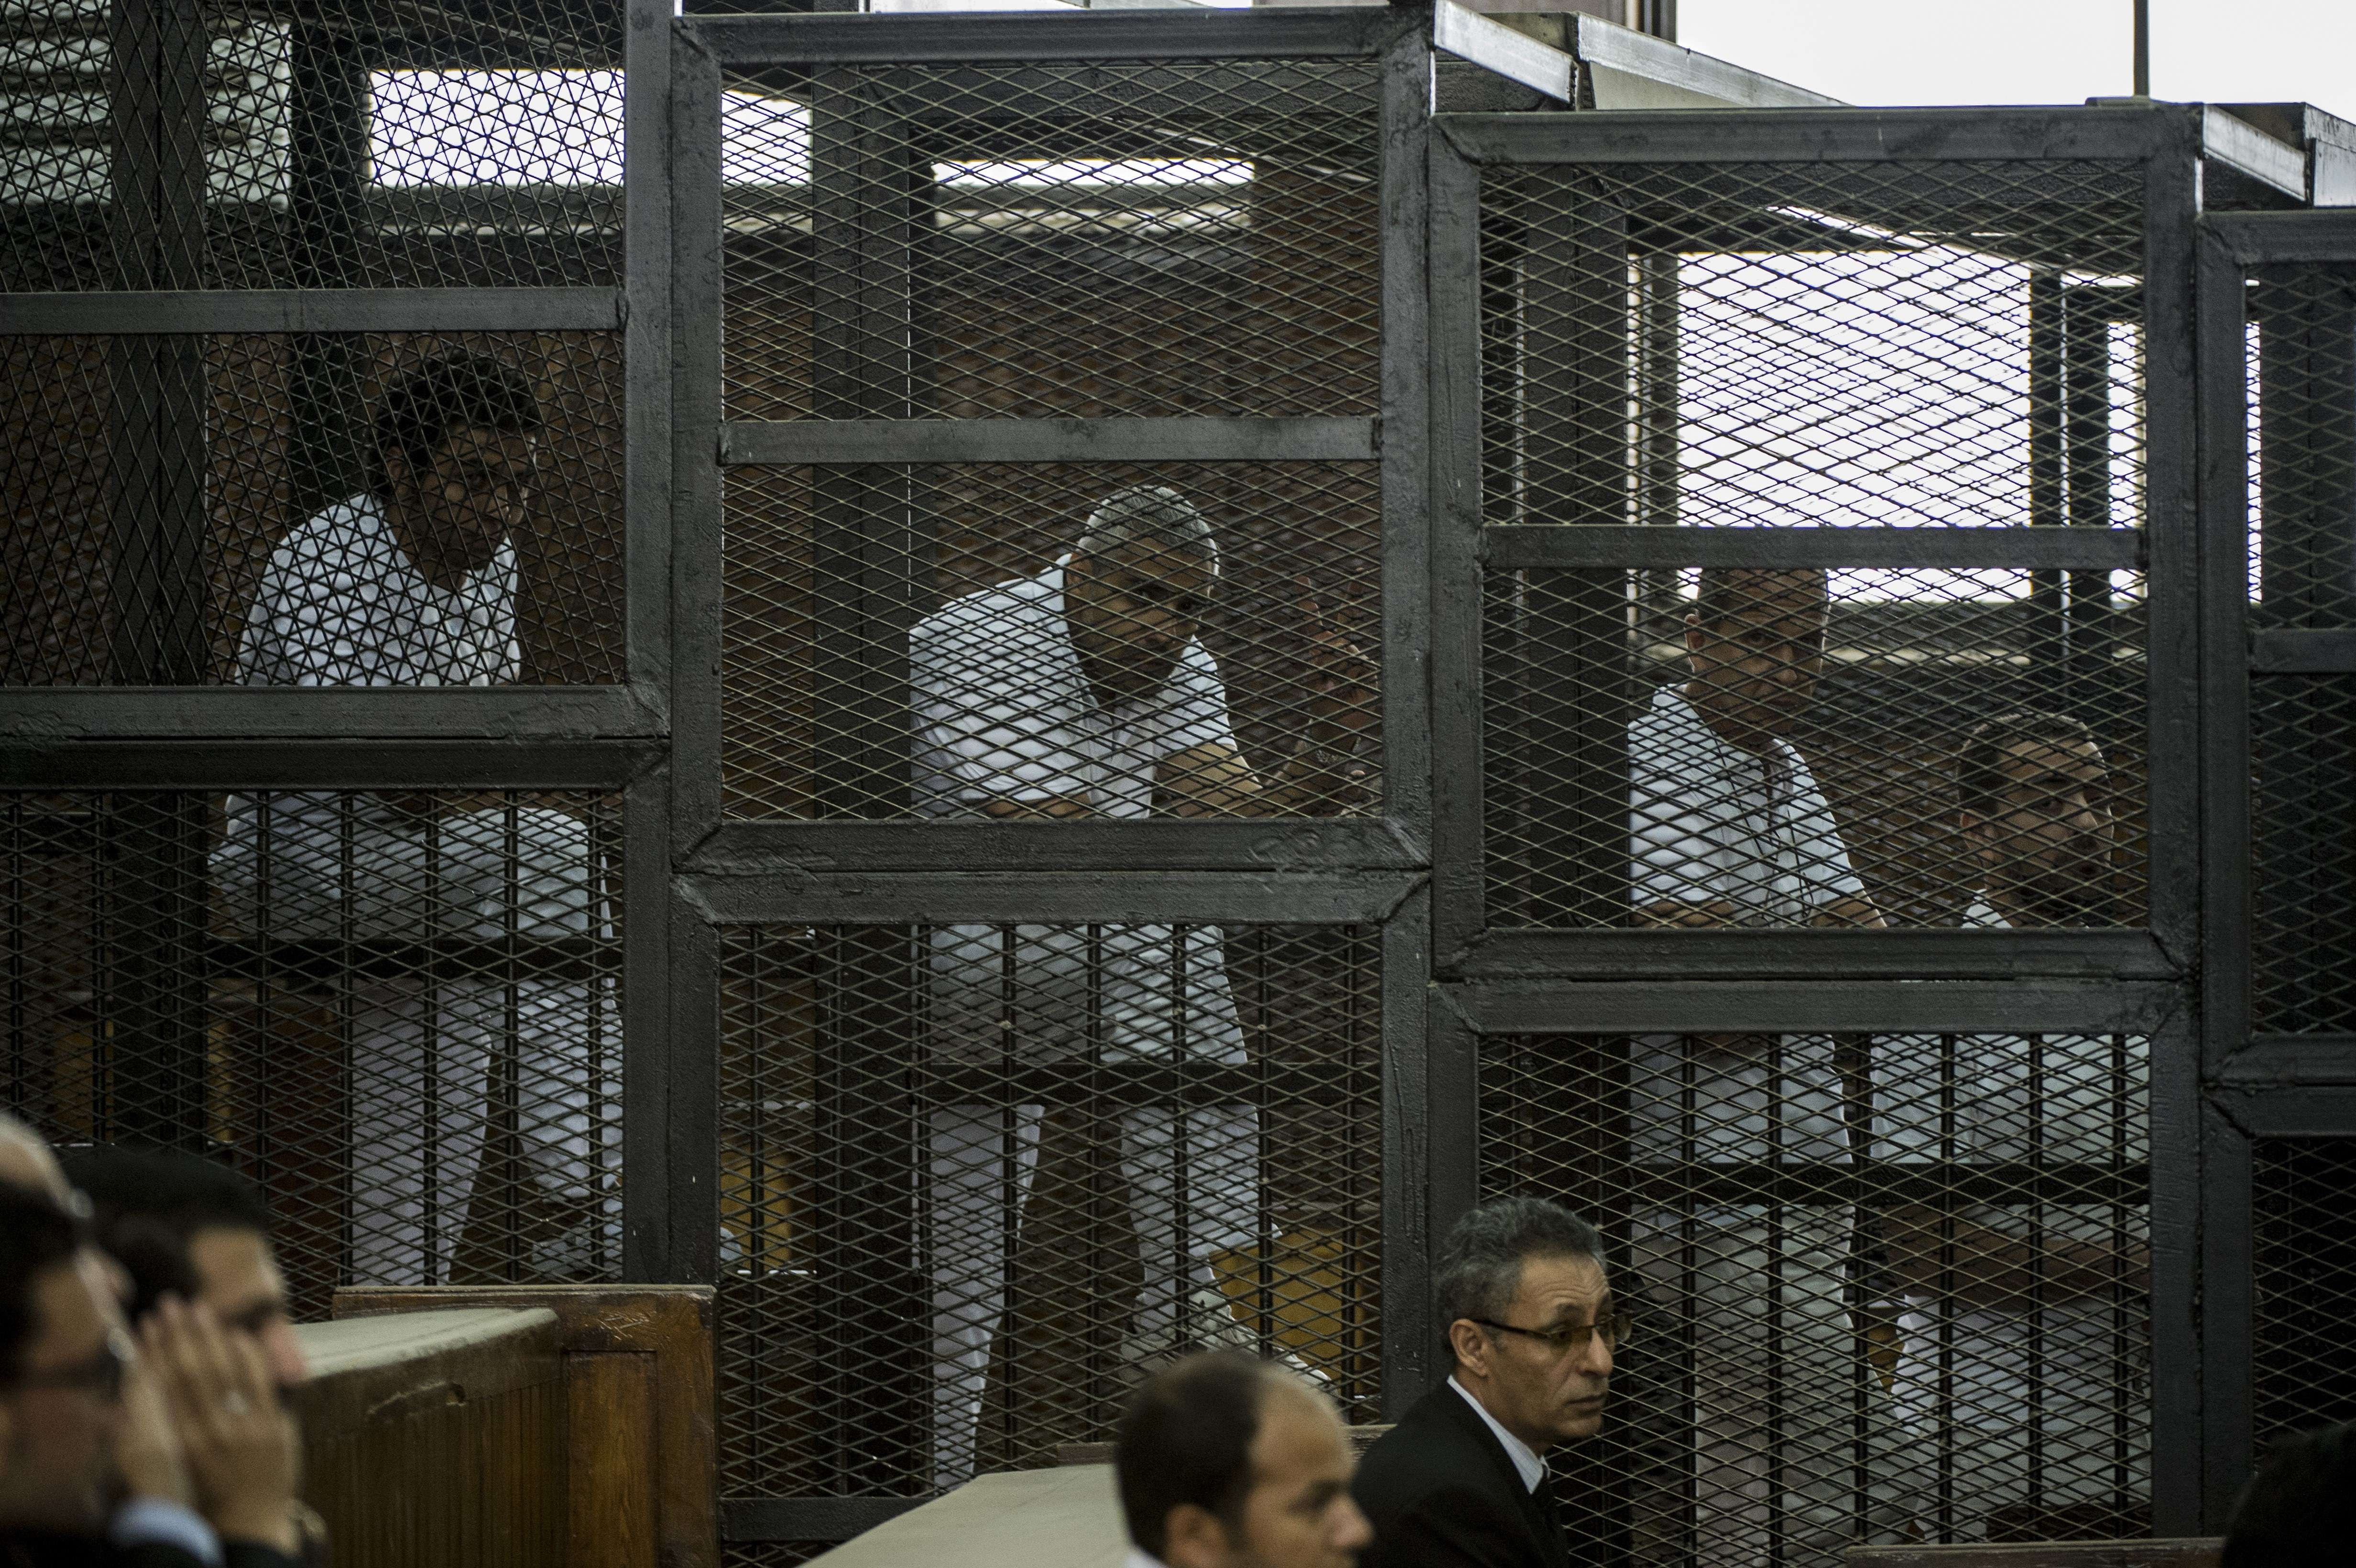 Al-Jazeera channel's Australian journalist Peter Greste (2nd-R), Egyptian-Canadian journalist Mohamed Fahmi (2n-L) and Egyptian journalist Mohamed Baher (R) stand inside the defendants cage during their trial for allegedly supporting the Muslim Brotherhood at the police institute near Cairo's Tora prison on June 1, 2014. The high-profile case that sparked a global outcry over muzzling of the press is seen as a test of the military-installed government's tolerance of independent media, with activists fearing a return to autocracy three years after the Arab Spring uprising that toppled Hosni Mubarak.  (AFP PHOTO / KHALED DESOUKI)